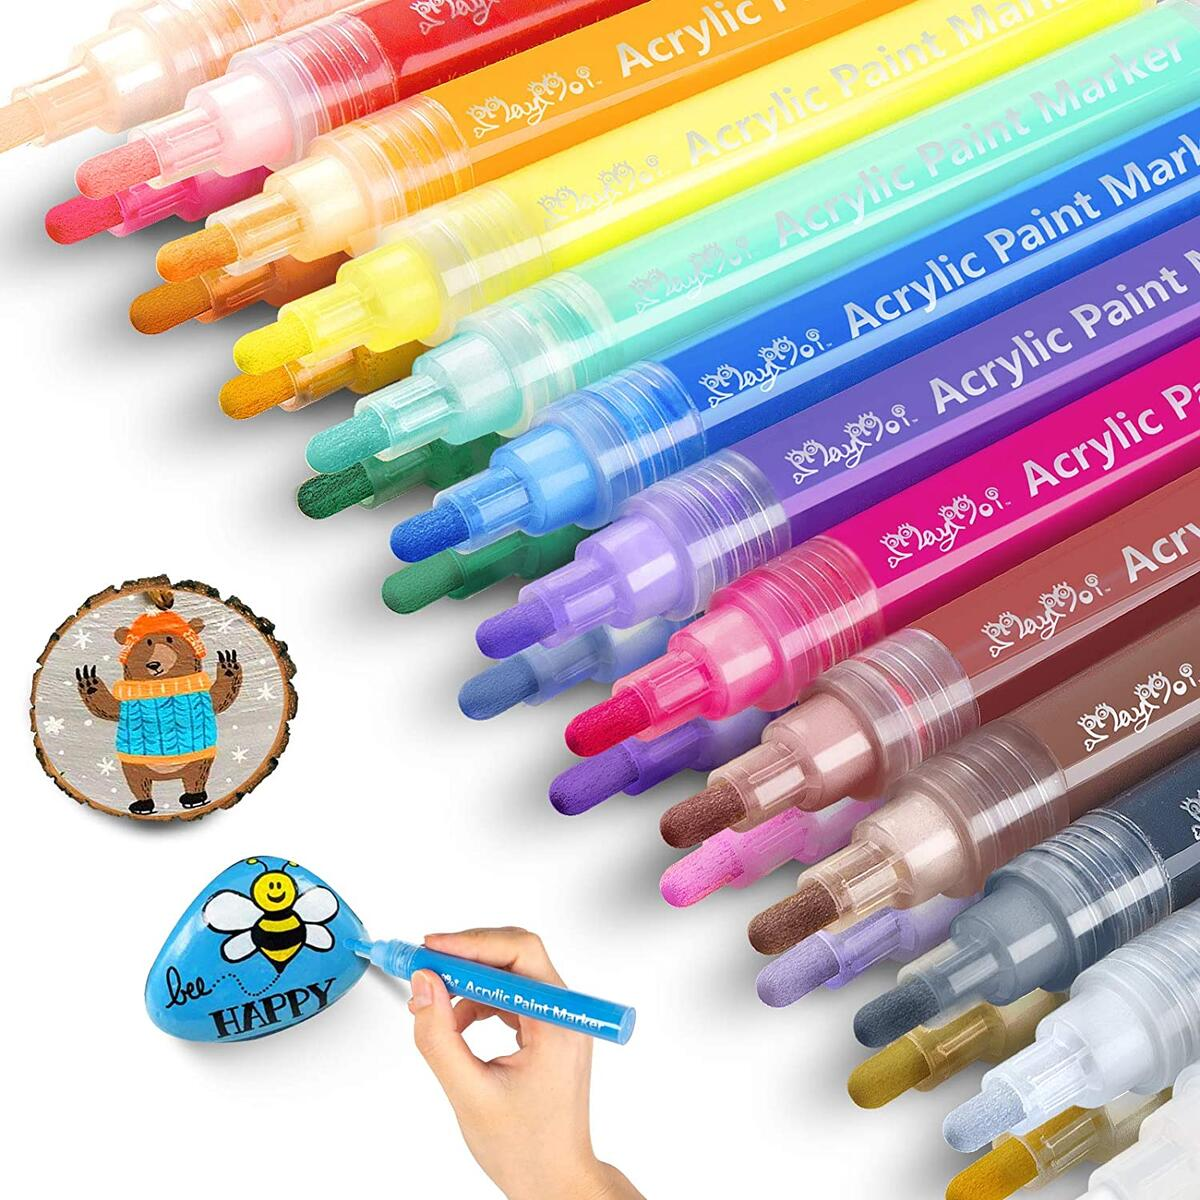 MayMoi Acrylic Paint Pens Reversible Tip for Rock Painting, Stone, Ceramic, Glass, Wood, Fabric, Canvas (24 Colors & Medium Tip Paint Pens)